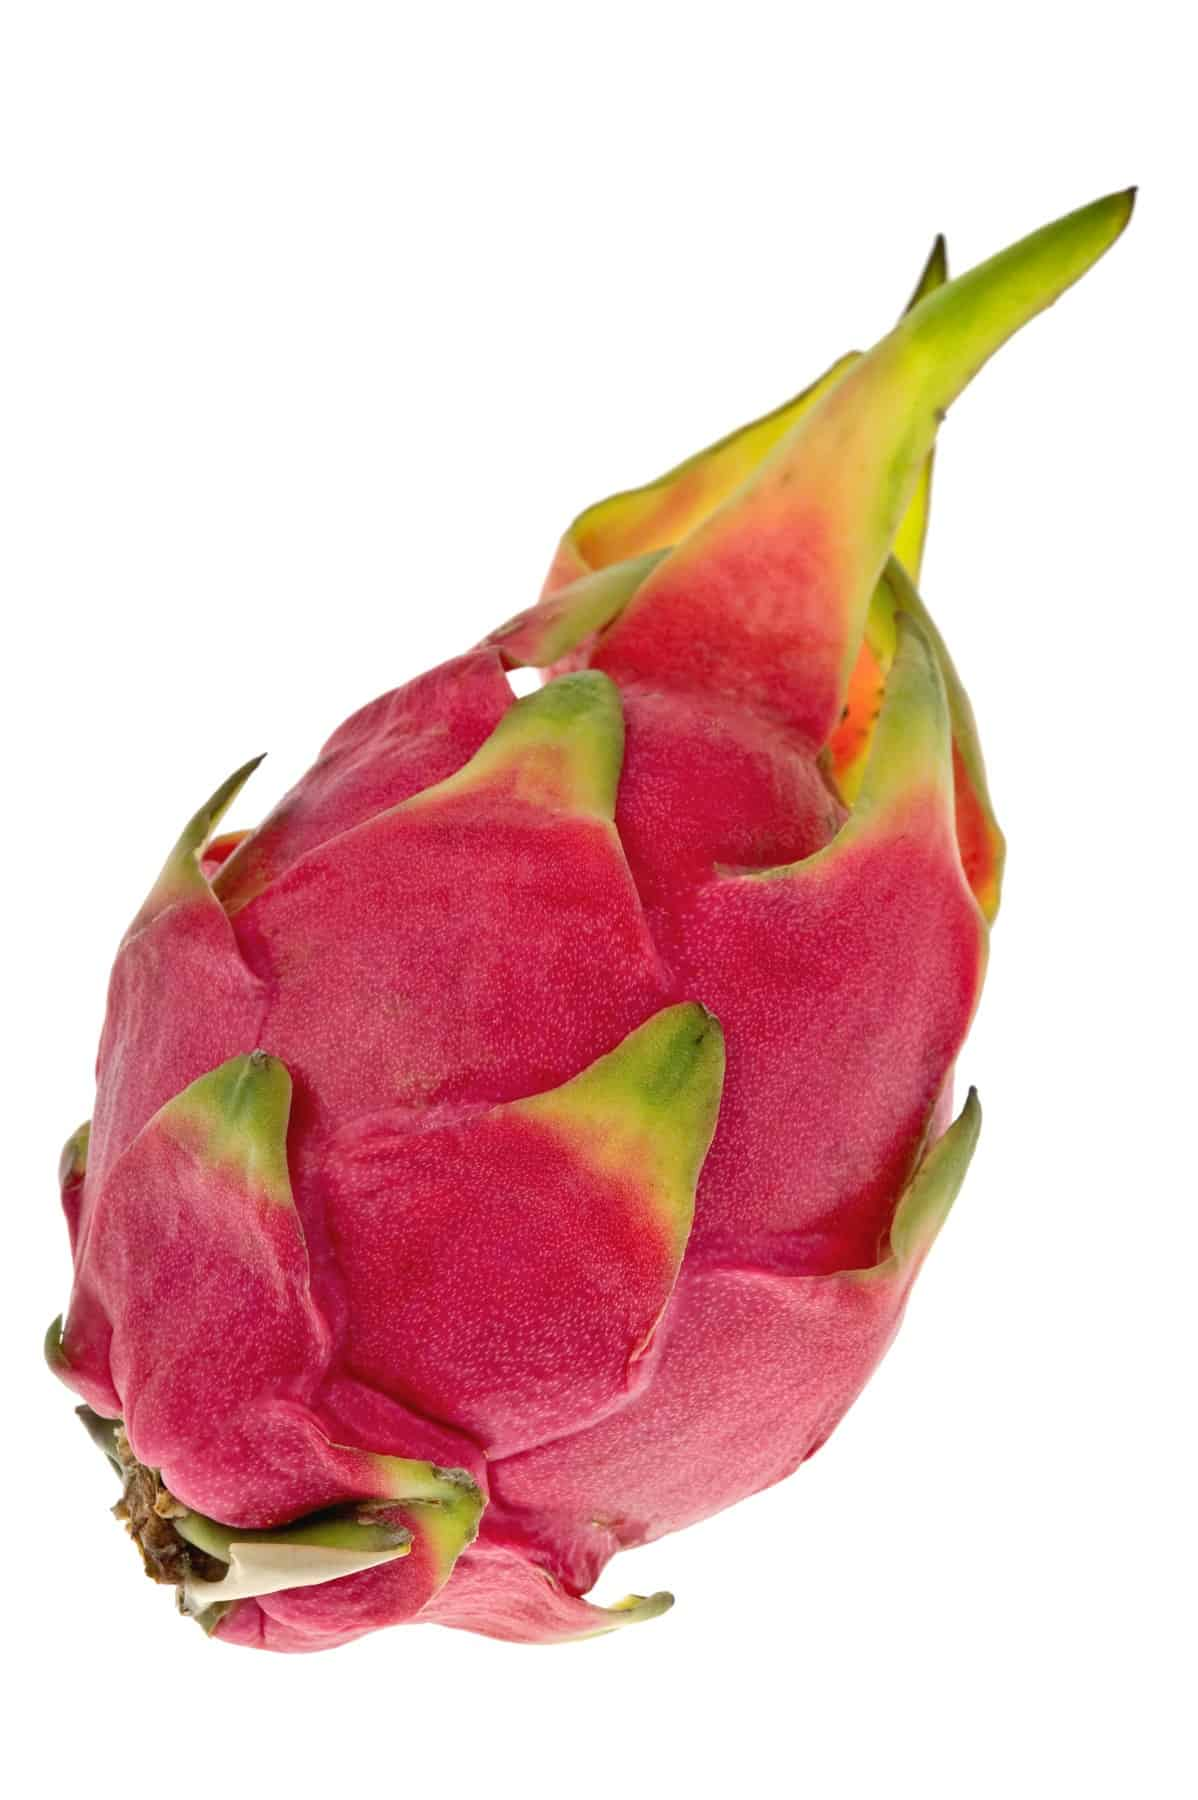 A whole dragon fruit on a white background